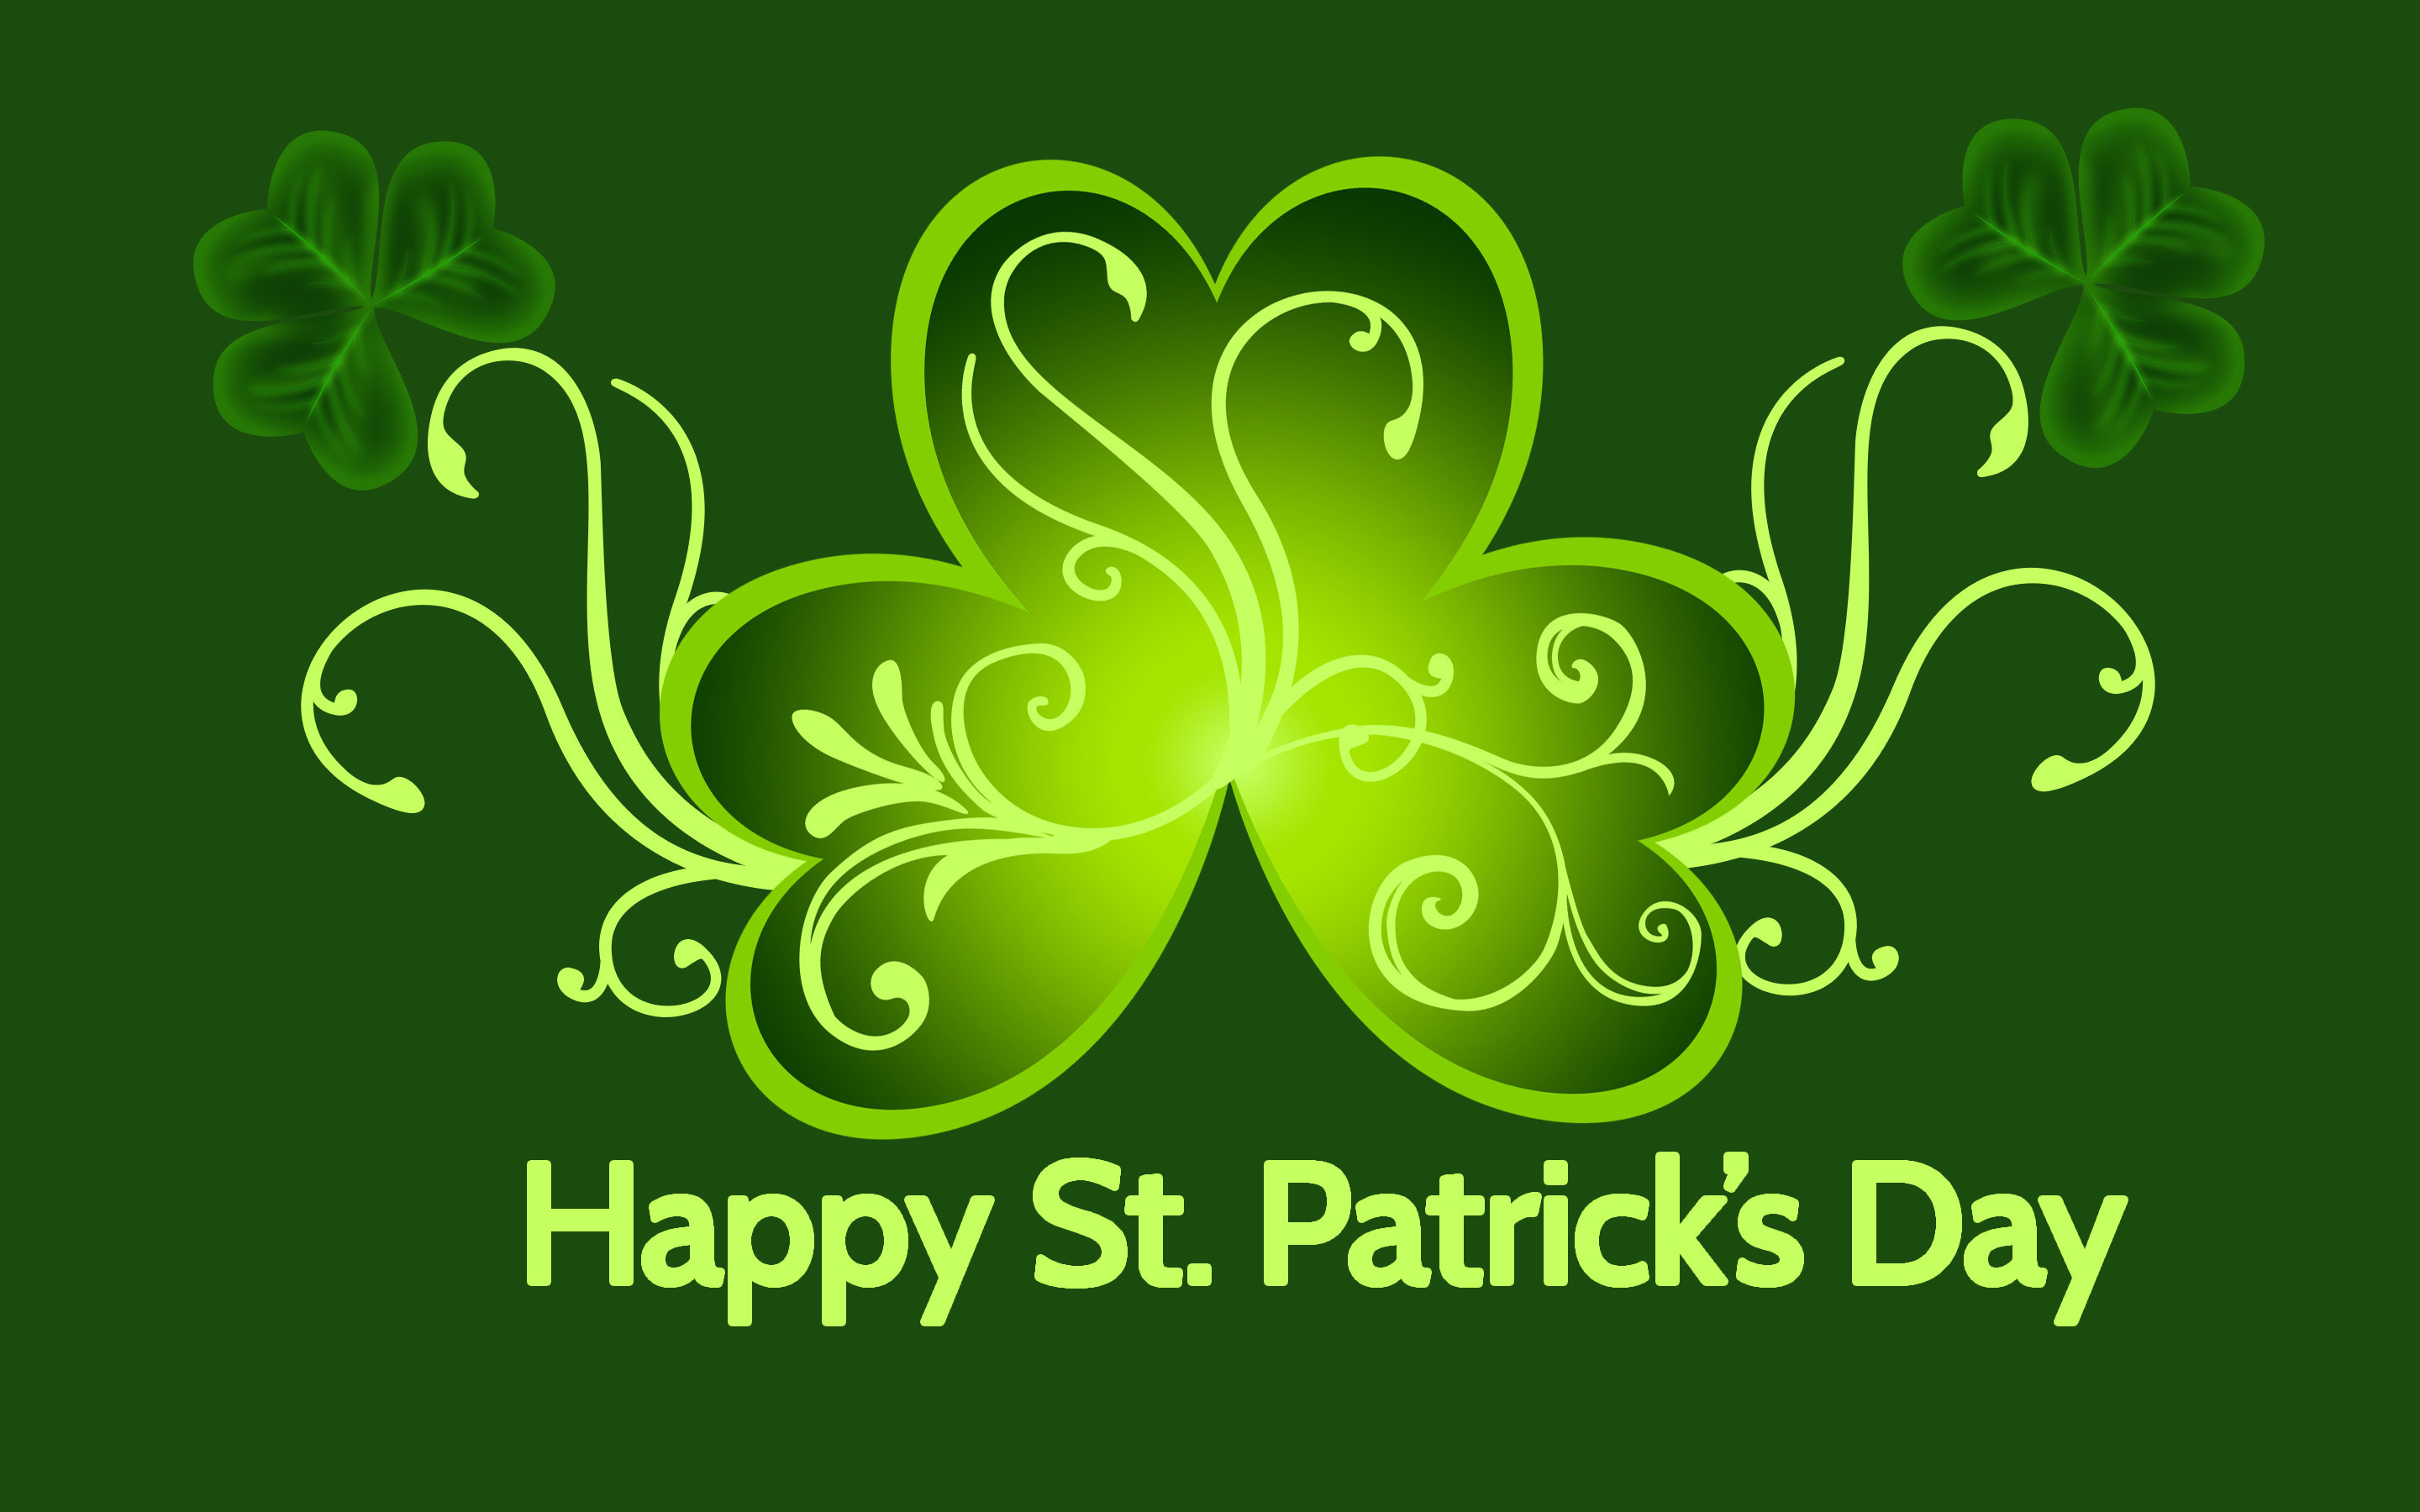 Saint Patrick Day Wallpaper 62 images 2880x1800